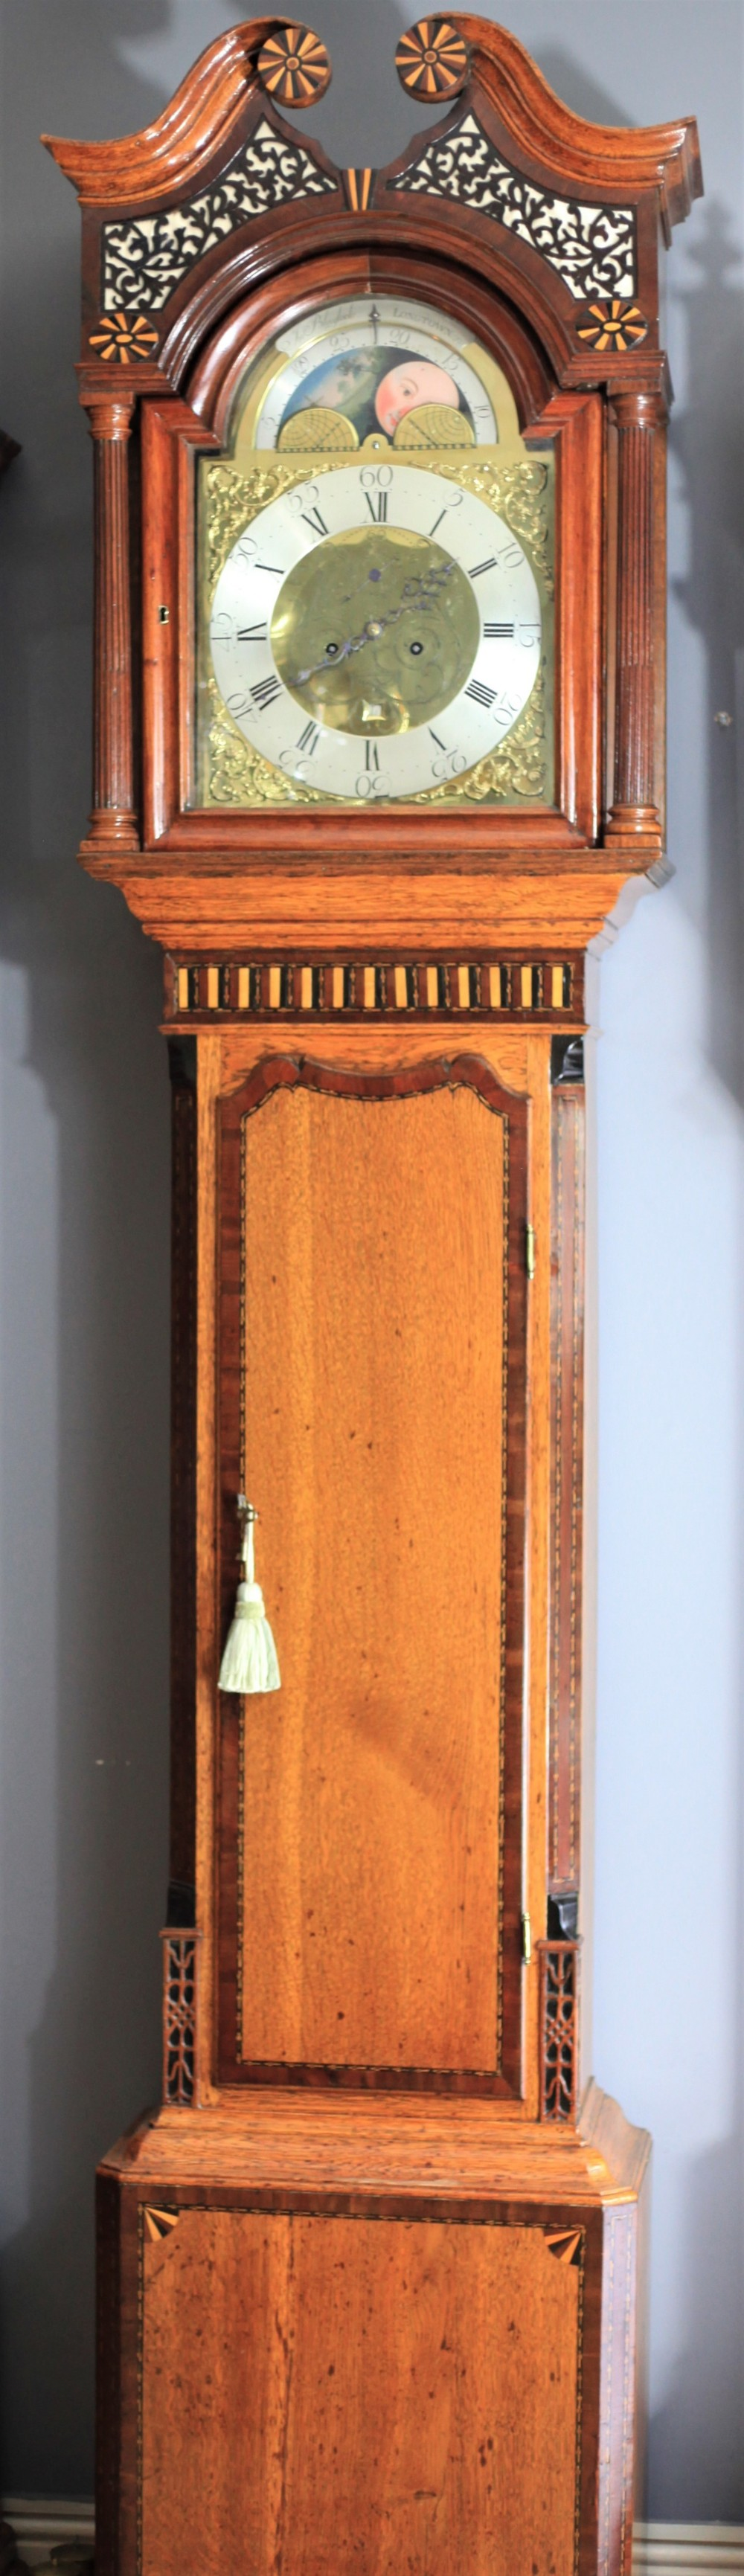 figured oak and inlay gillows longcase clock by john blaylock of longtown c1770